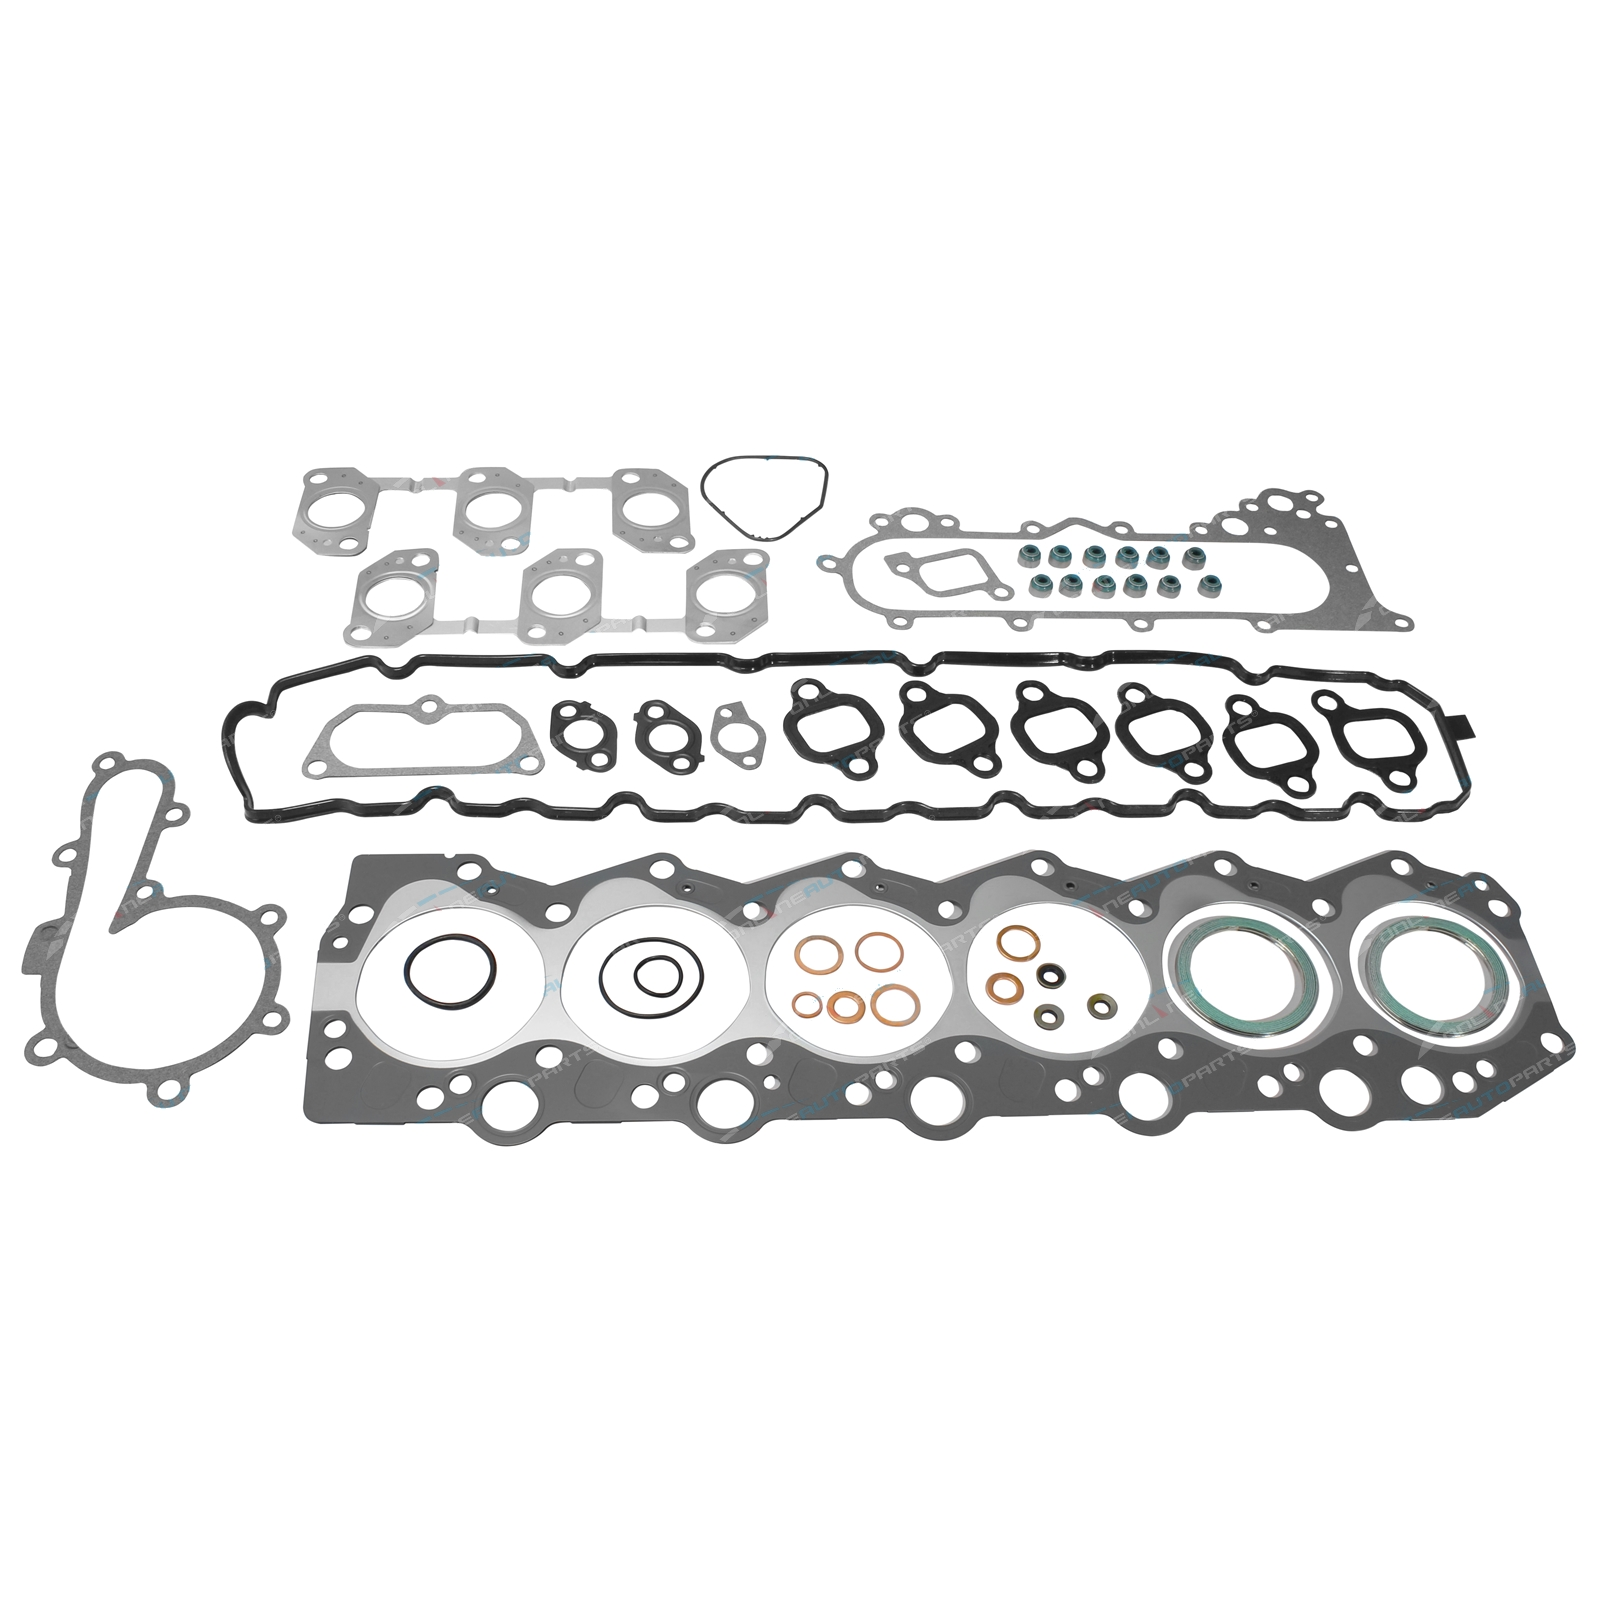 Engine Vrs Set Inc Cylidner Head Gasket Suits Toyota Hdj80